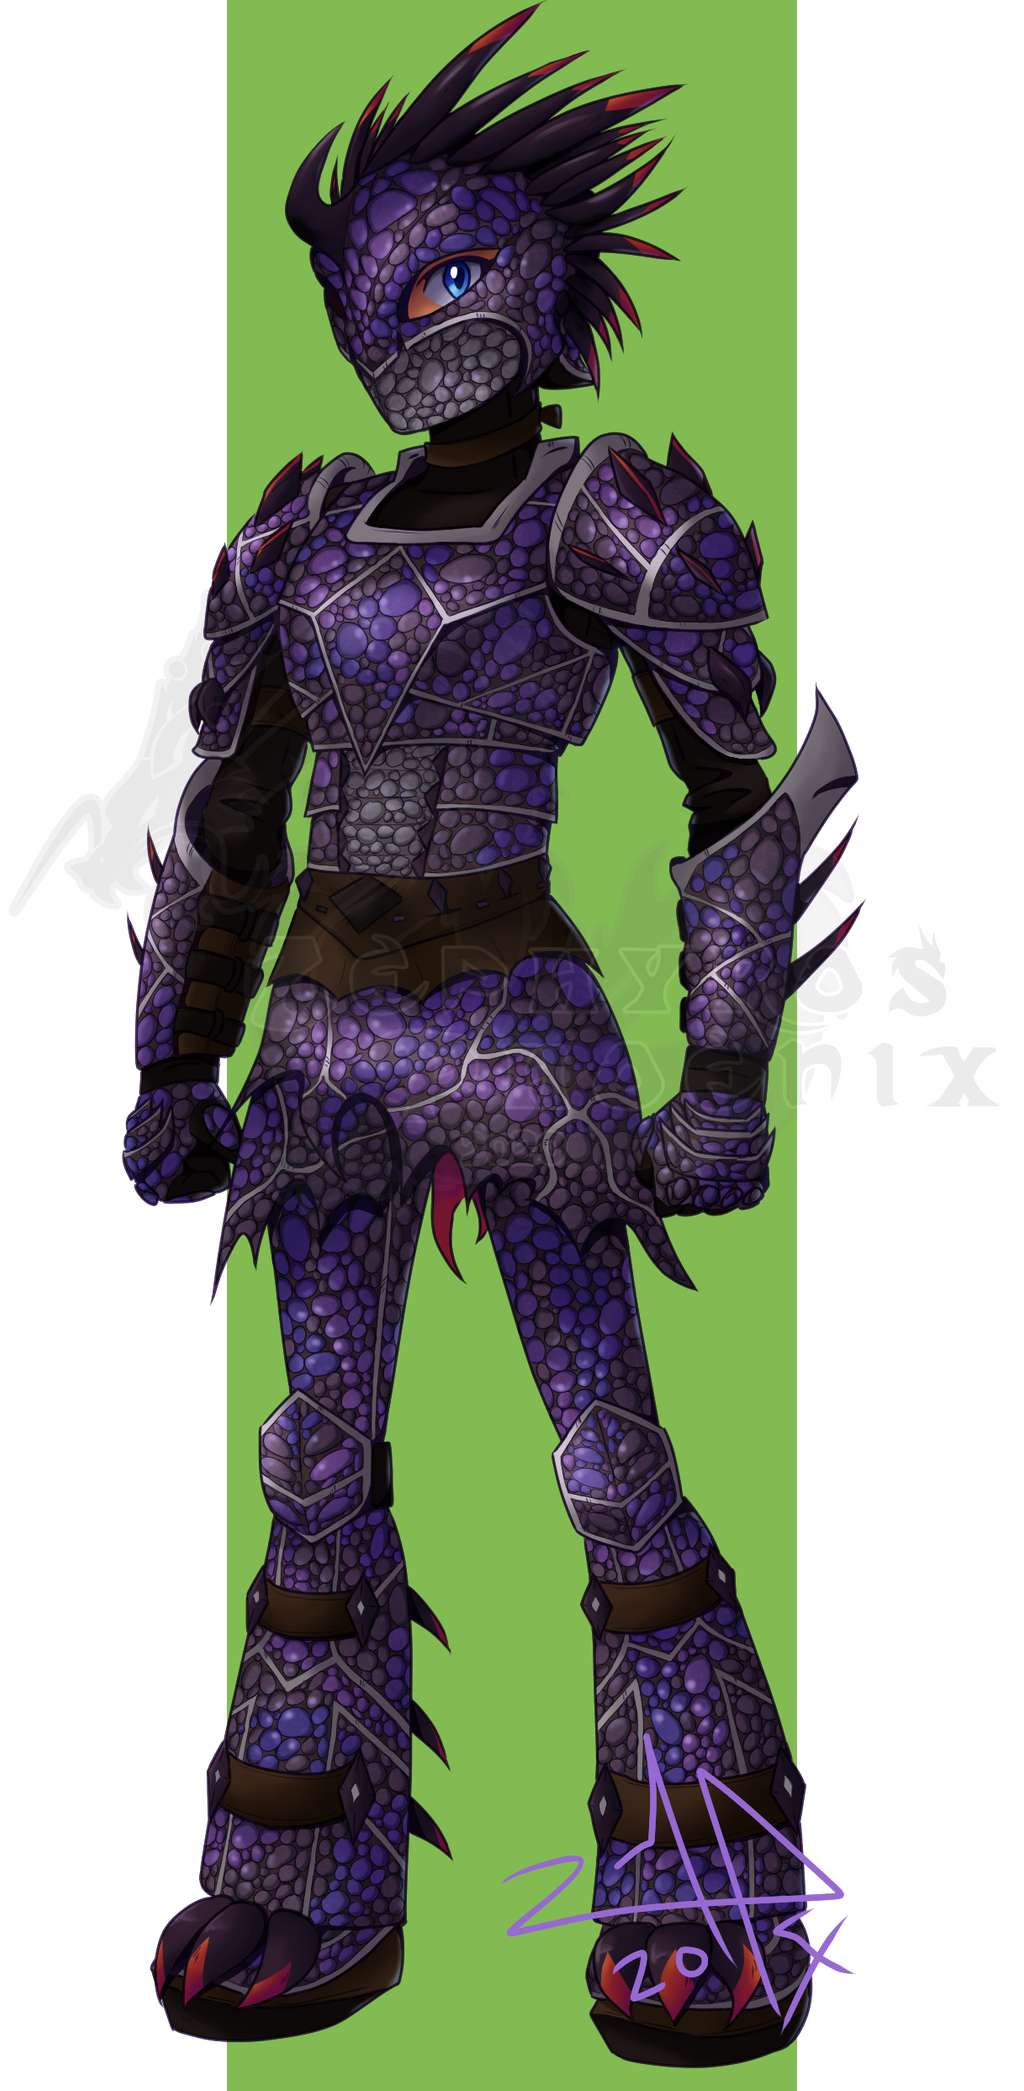 Sigrid S Dragon Scale Armor By Zephyros Phoenix On Deviantart It consists of the dragon mask, dragon breastplate and dragon greaves. dragon scale armor by zephyros phoenix